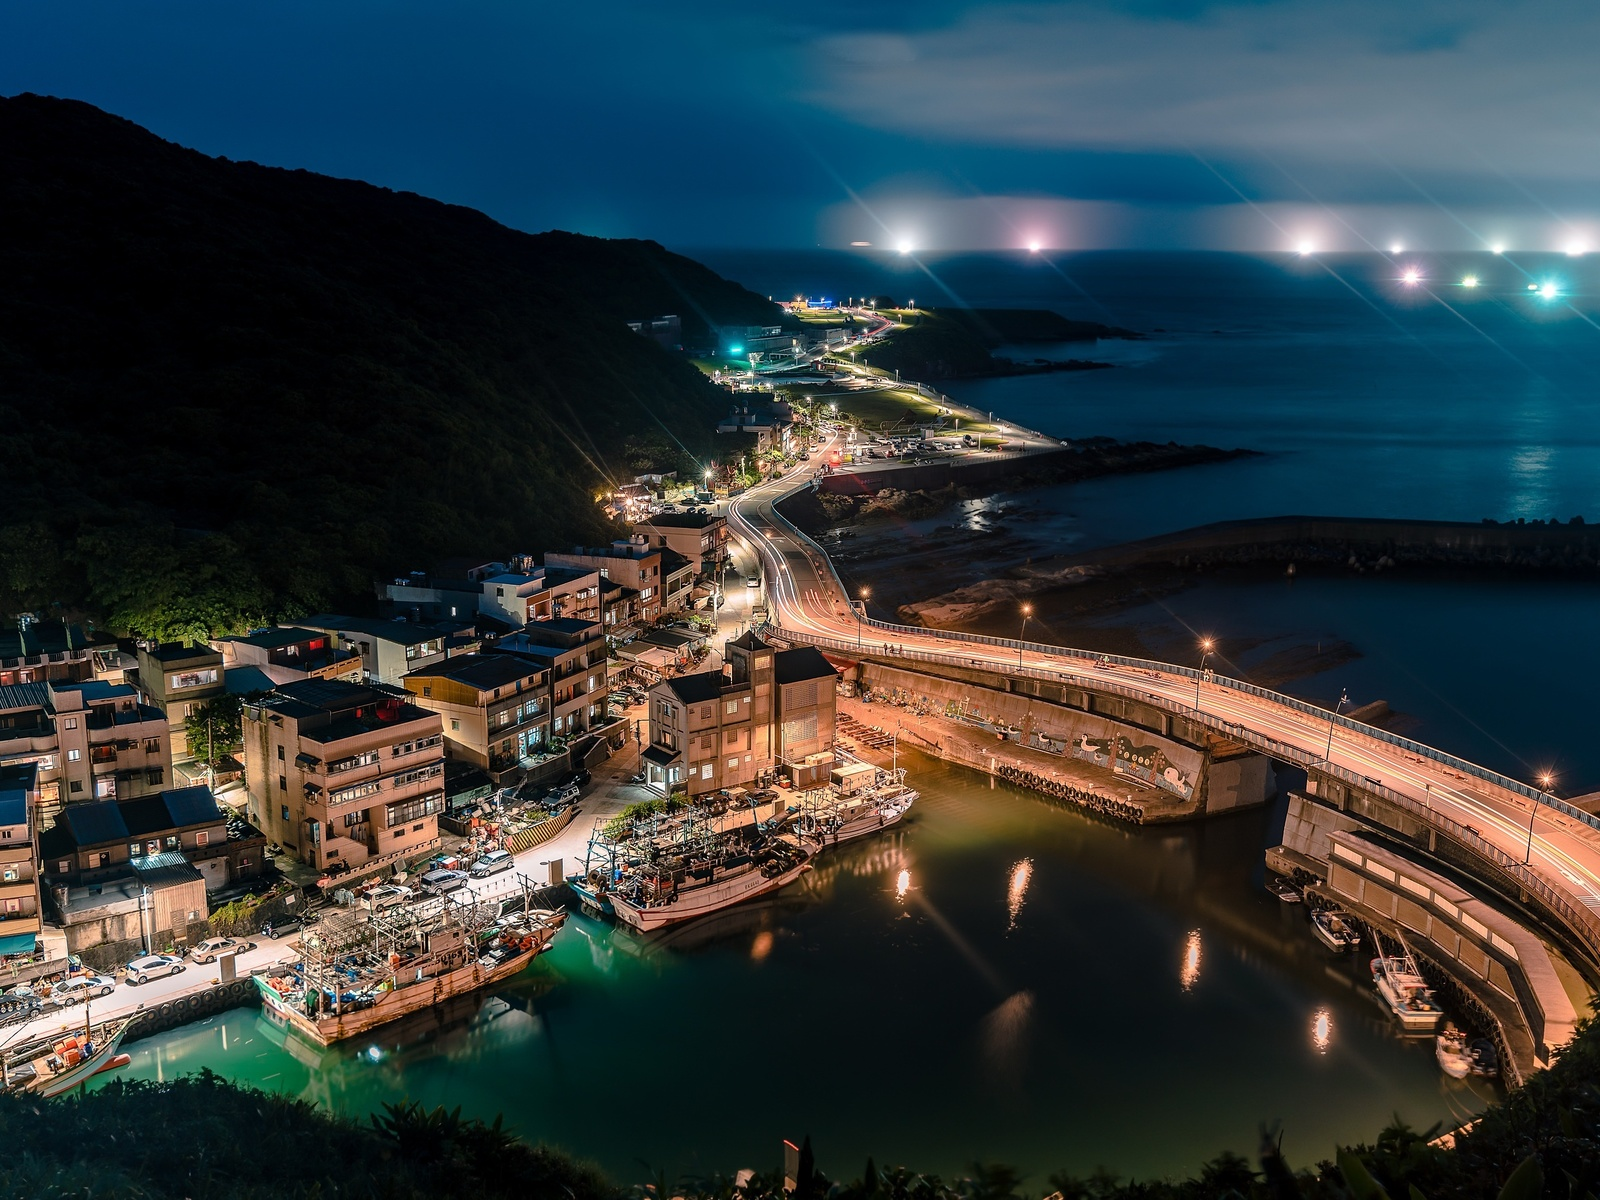 port of keelung, nightscapes, keelung harbor, ocean, asian cities, keelung, taiwan, asia